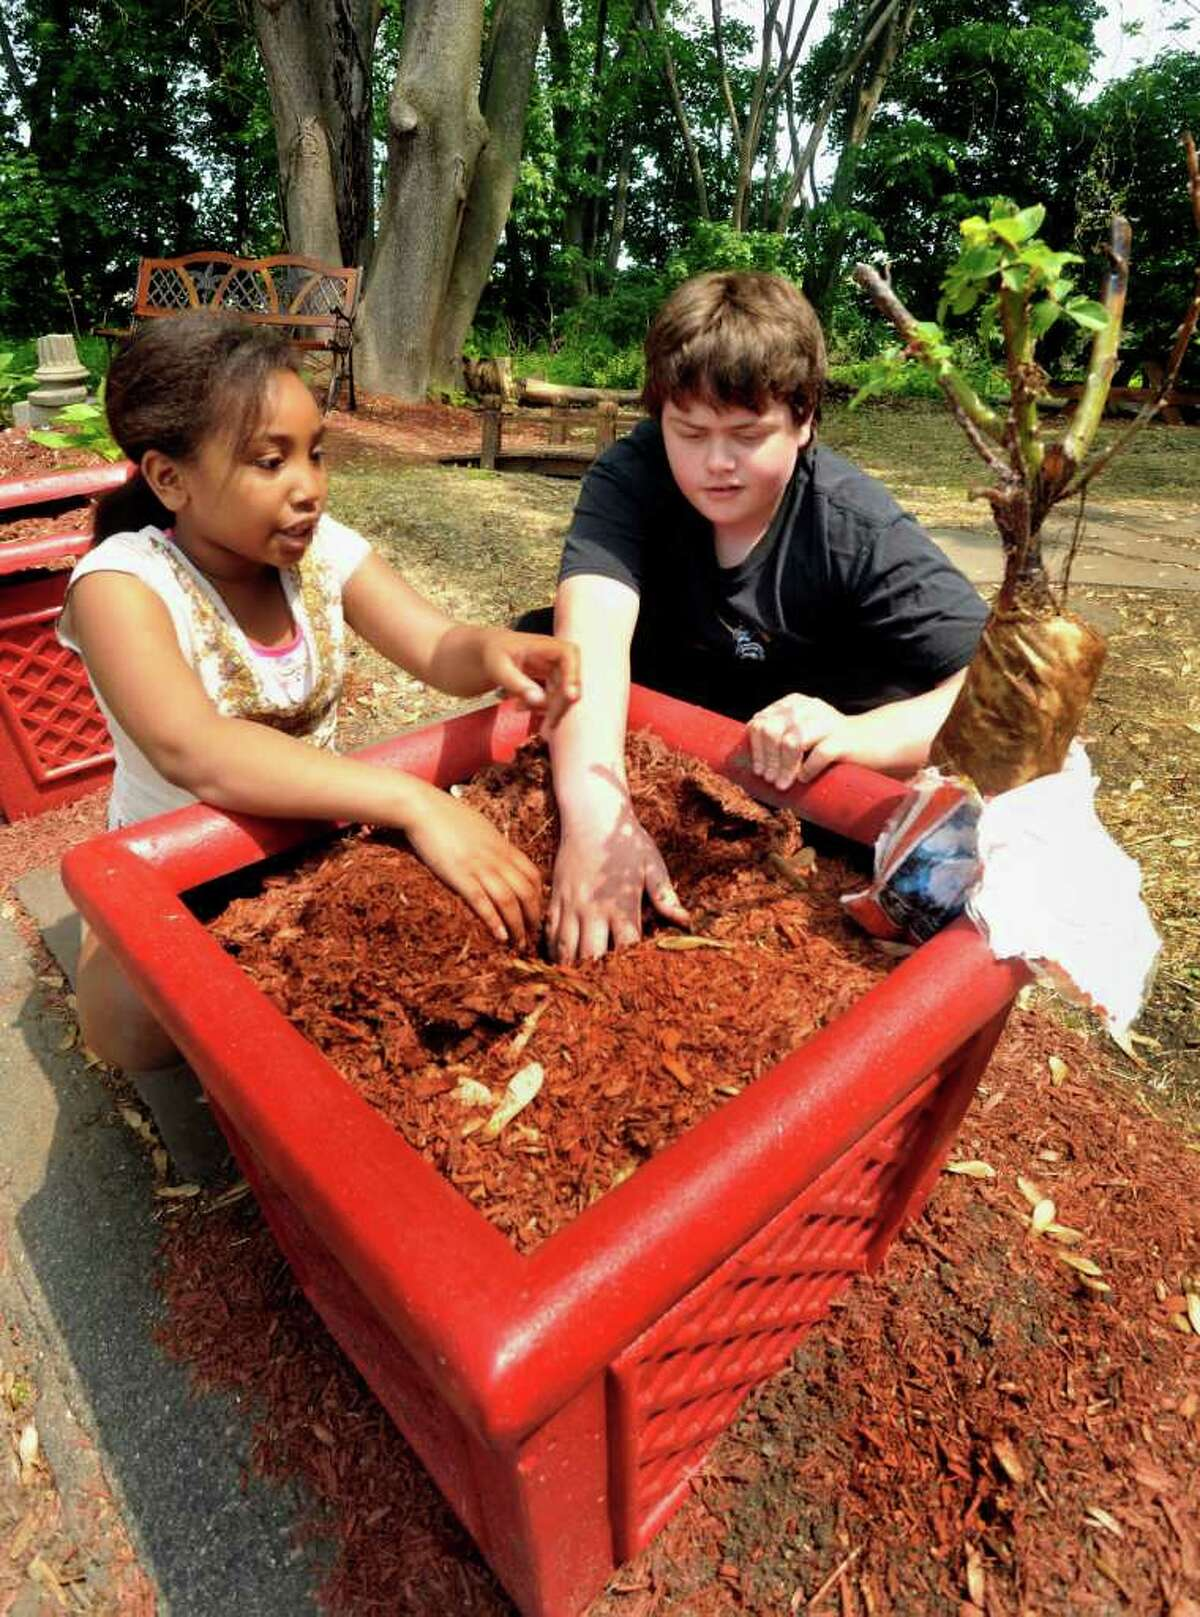 Esperanza Hernandez, 8, and Ranier Bassett, 12, work on a planter in the park and community garden that students of Education Connection Access Gertrude Fielding Learning Center have created. They cleaned up what had been a dumping ground behind the Danbury School. Photographed Thursday, May 26, 2011.